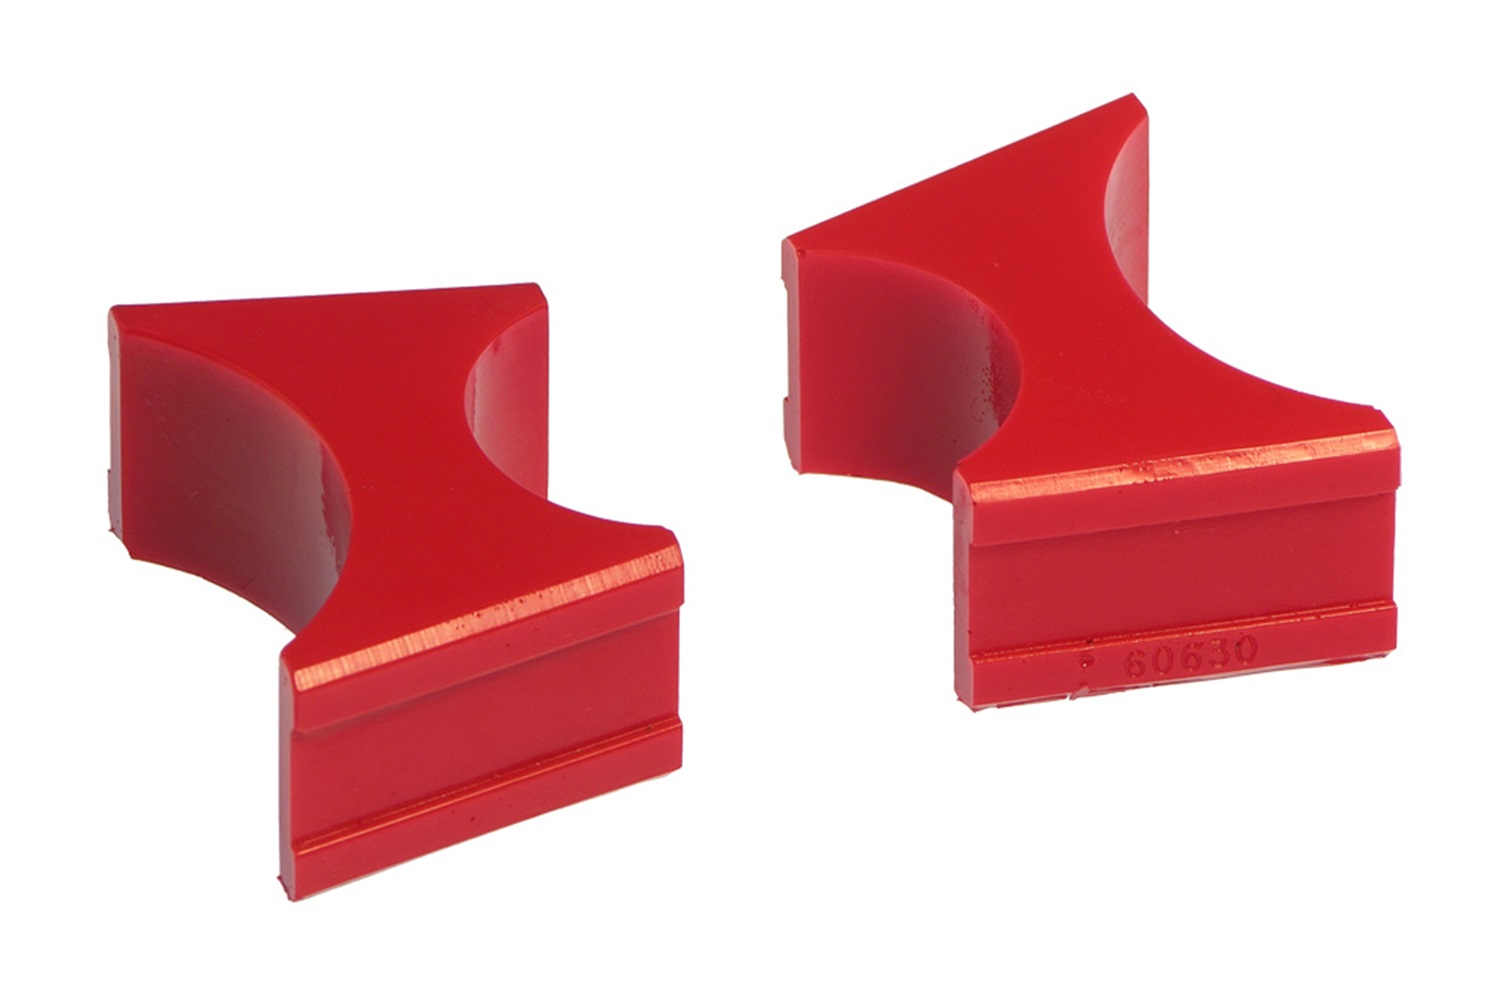 All Vehicles (Universal) Prothane Shock Resevoir Mount Bushings - 1.5/2.5 Inch Diameter - Red